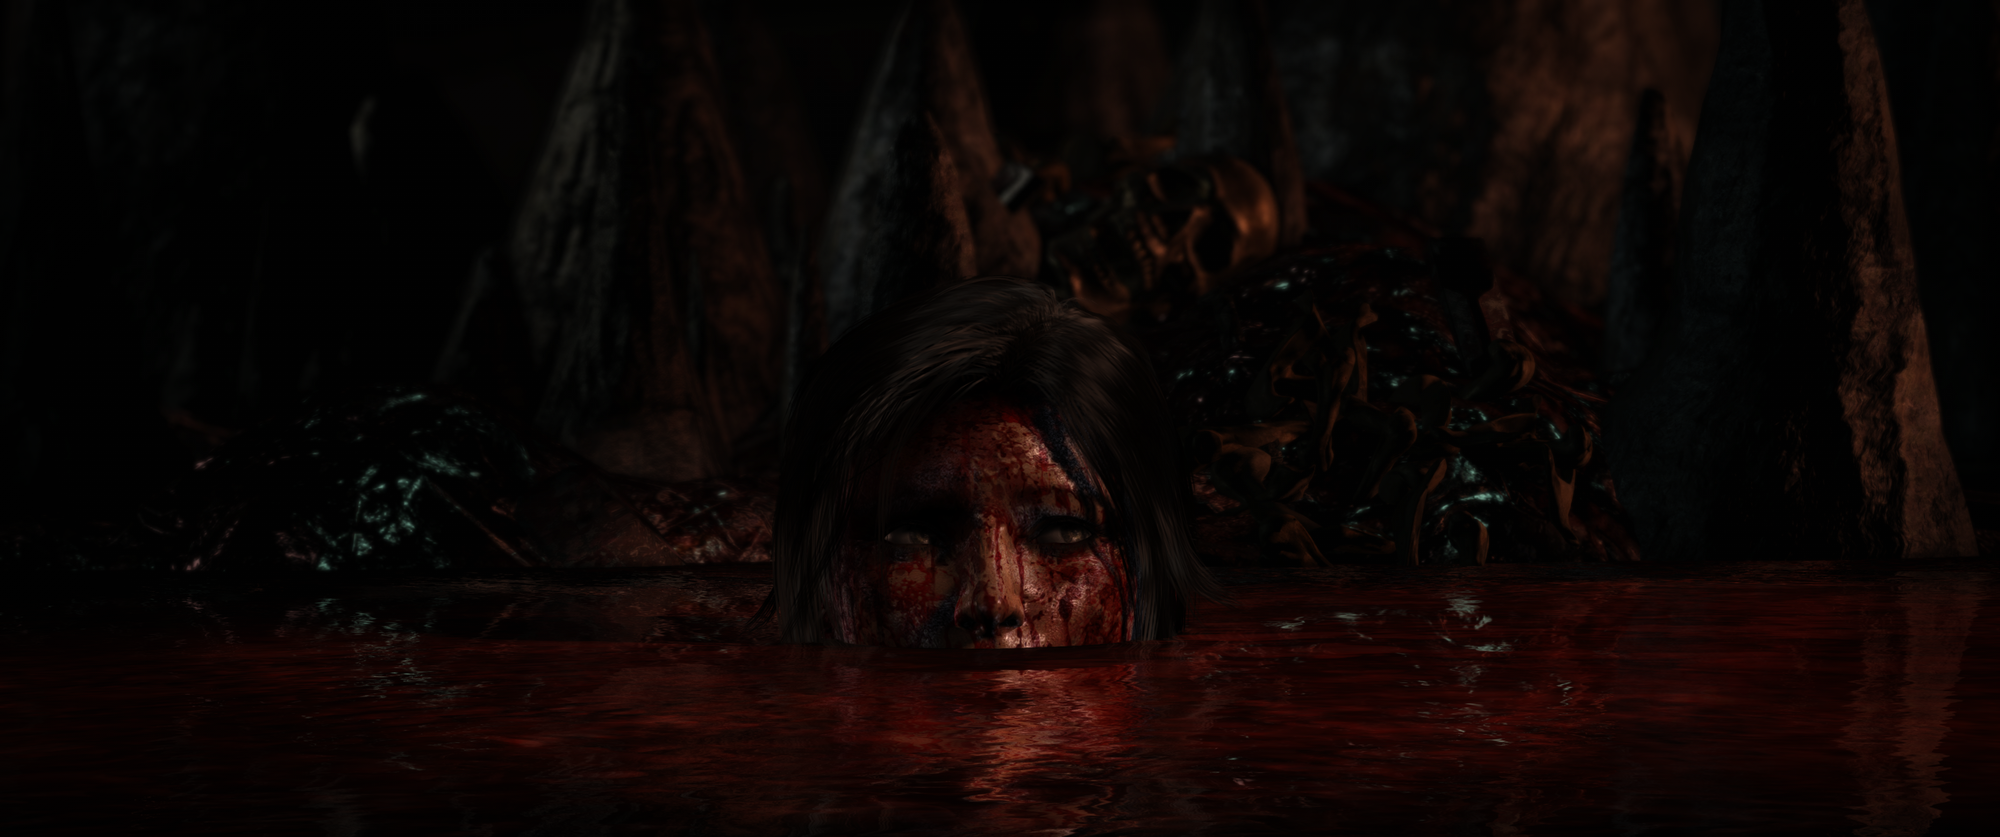 TombRaider_2018_07_24_22_02_41_433.png